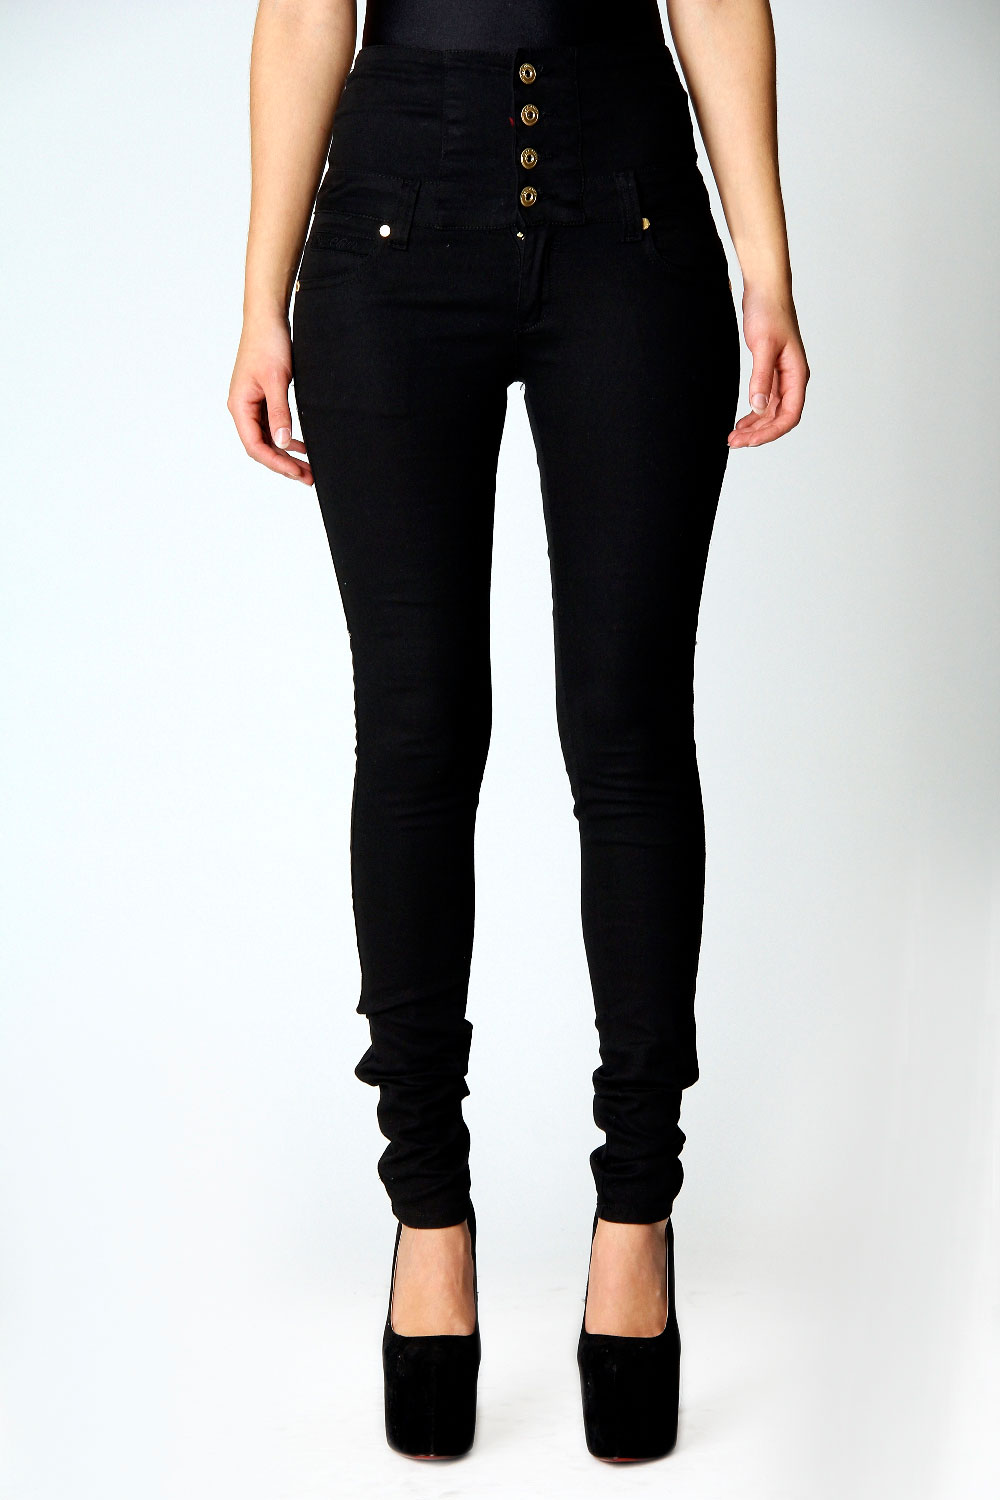 boohoo penny 98 cotton high waisted jeans ebay. Black Bedroom Furniture Sets. Home Design Ideas